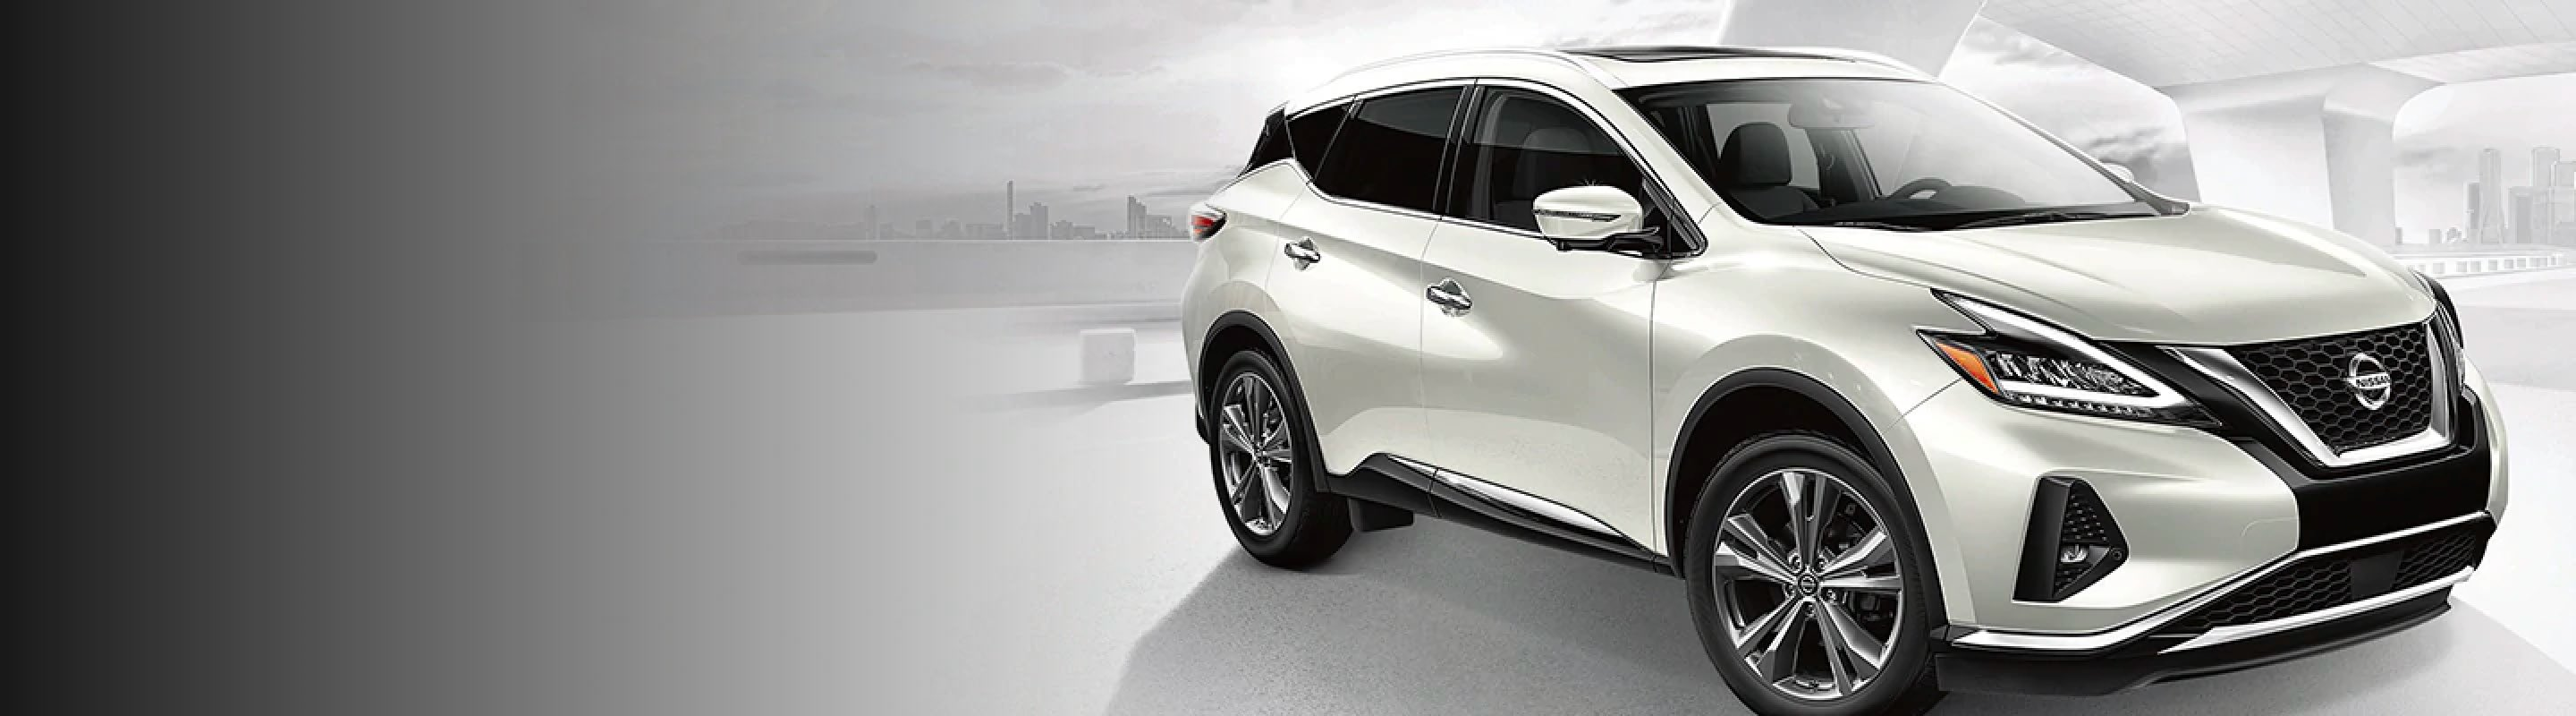 2021 Nissan Murano white front angle view